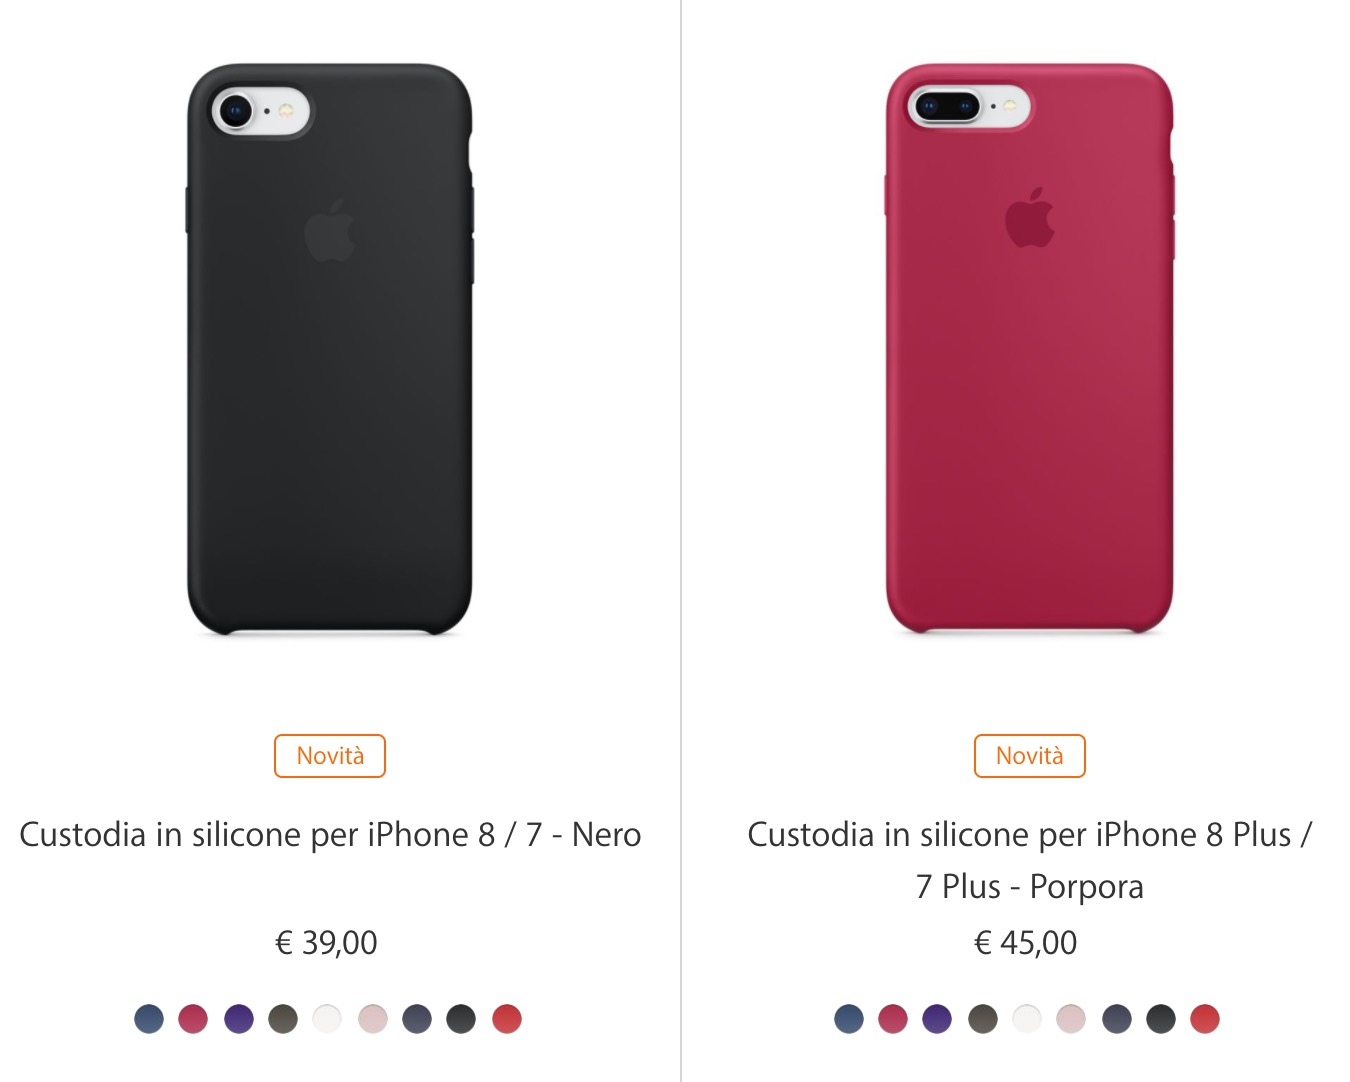 custodia in silicone per iphone 8